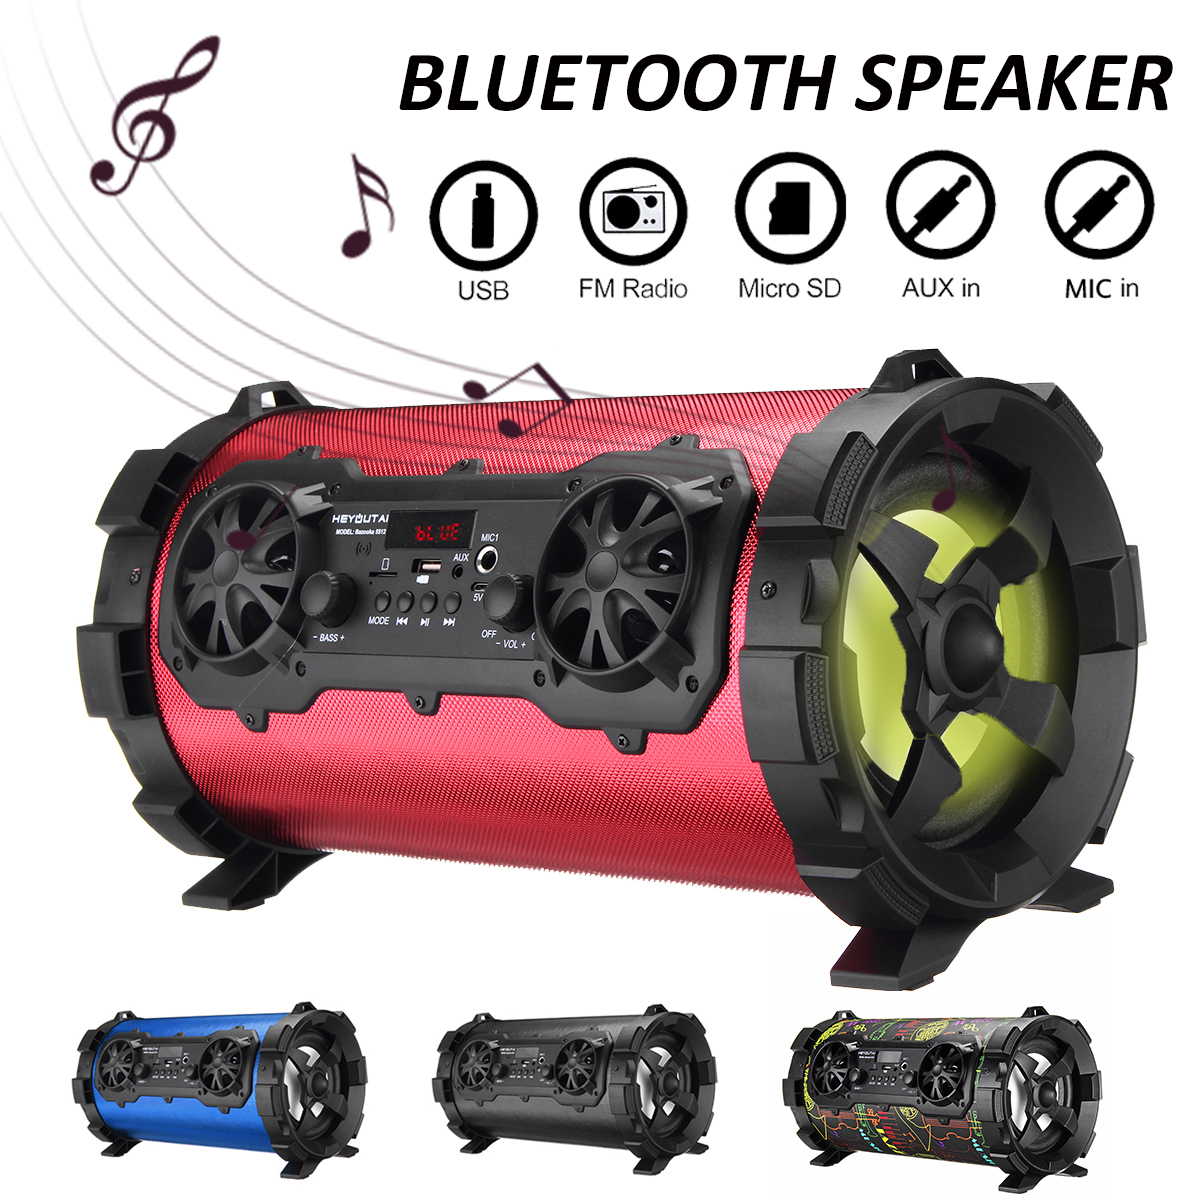 25W Wireless Bluetooth V4.1 Speaker Portable Loudspeaker Sound System AUX/USB/TF Card/Radio FM Outdoor Speaker Player Music portable bluetooth speaker wireless outdoor stereo bass sound hifi loudspeaker 20w high power big speaker with tf card fm radio